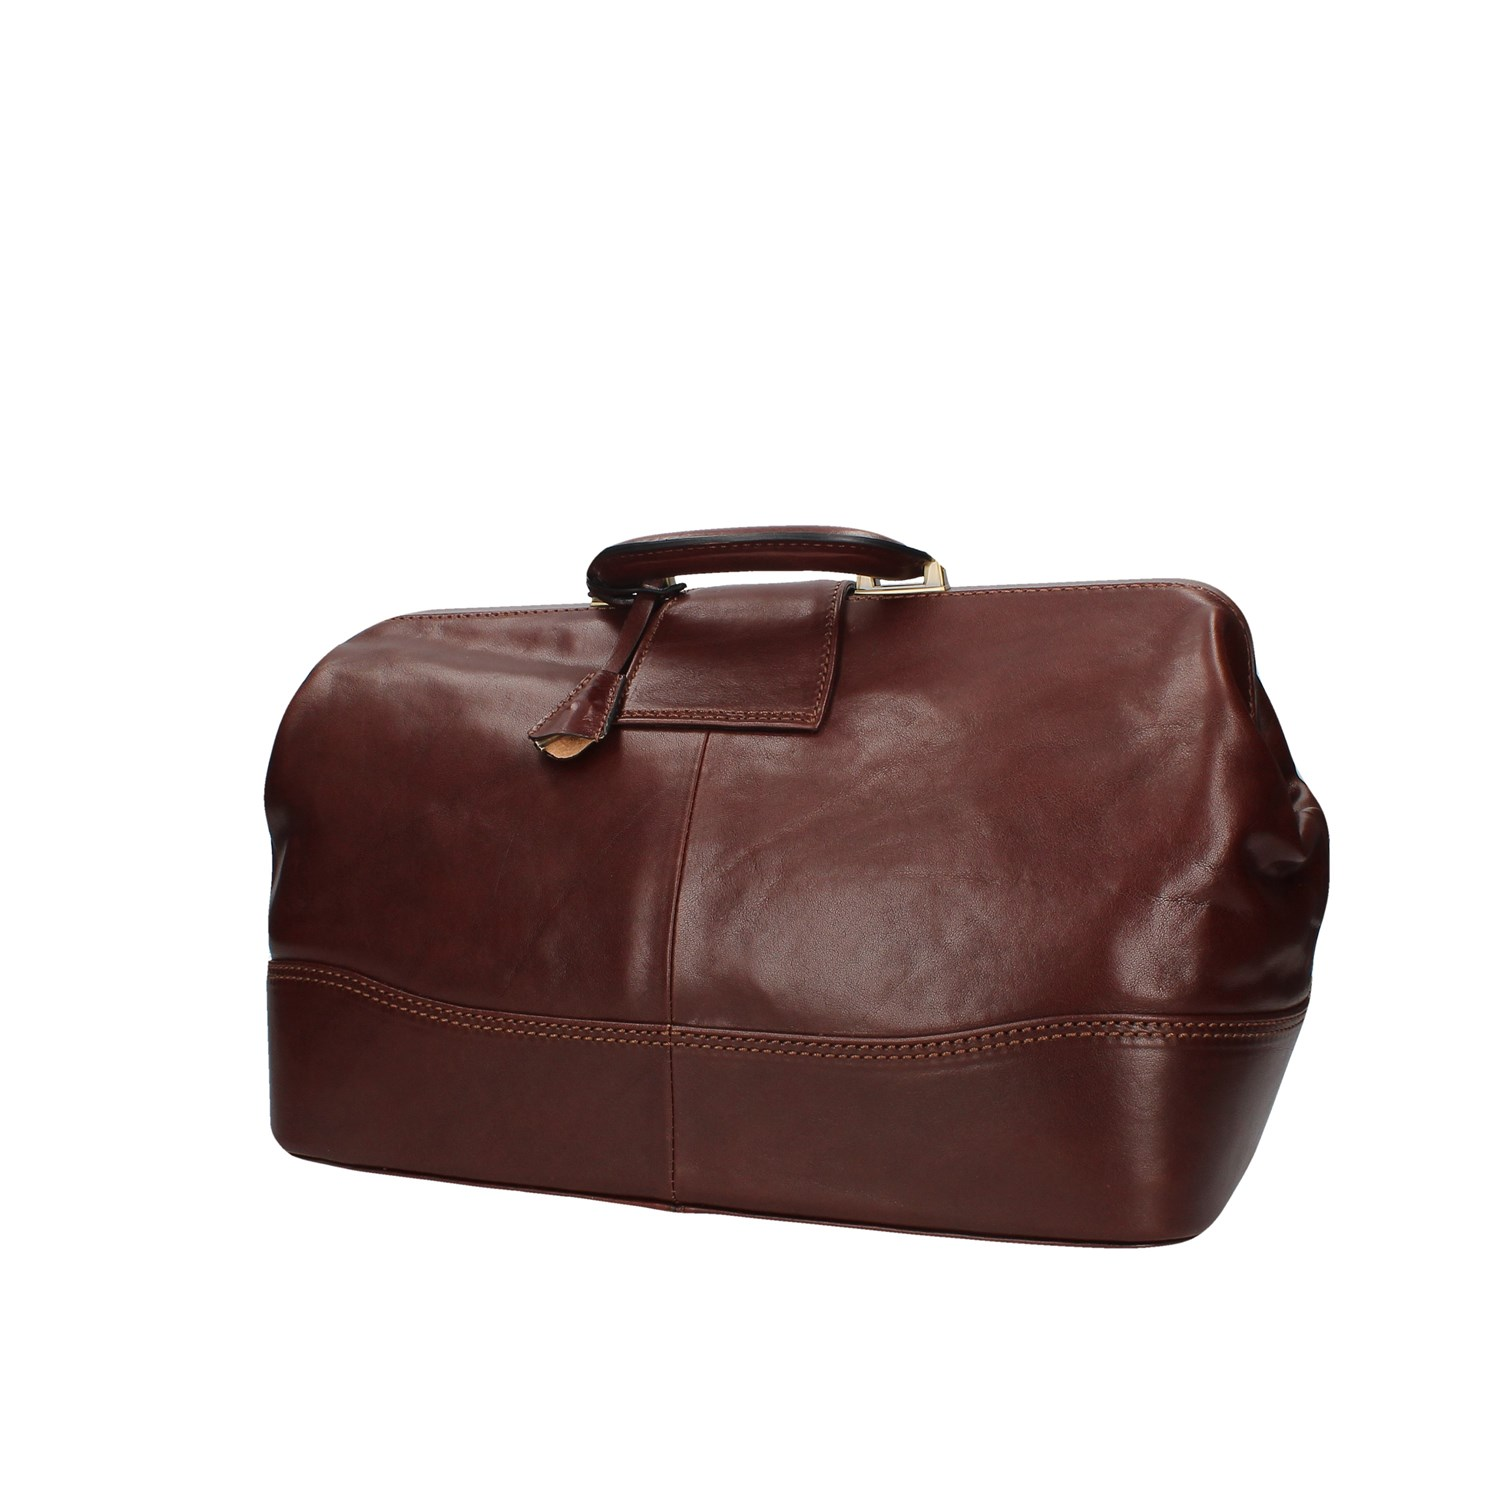 Gianni Conti 9401094 Brown Bags Man